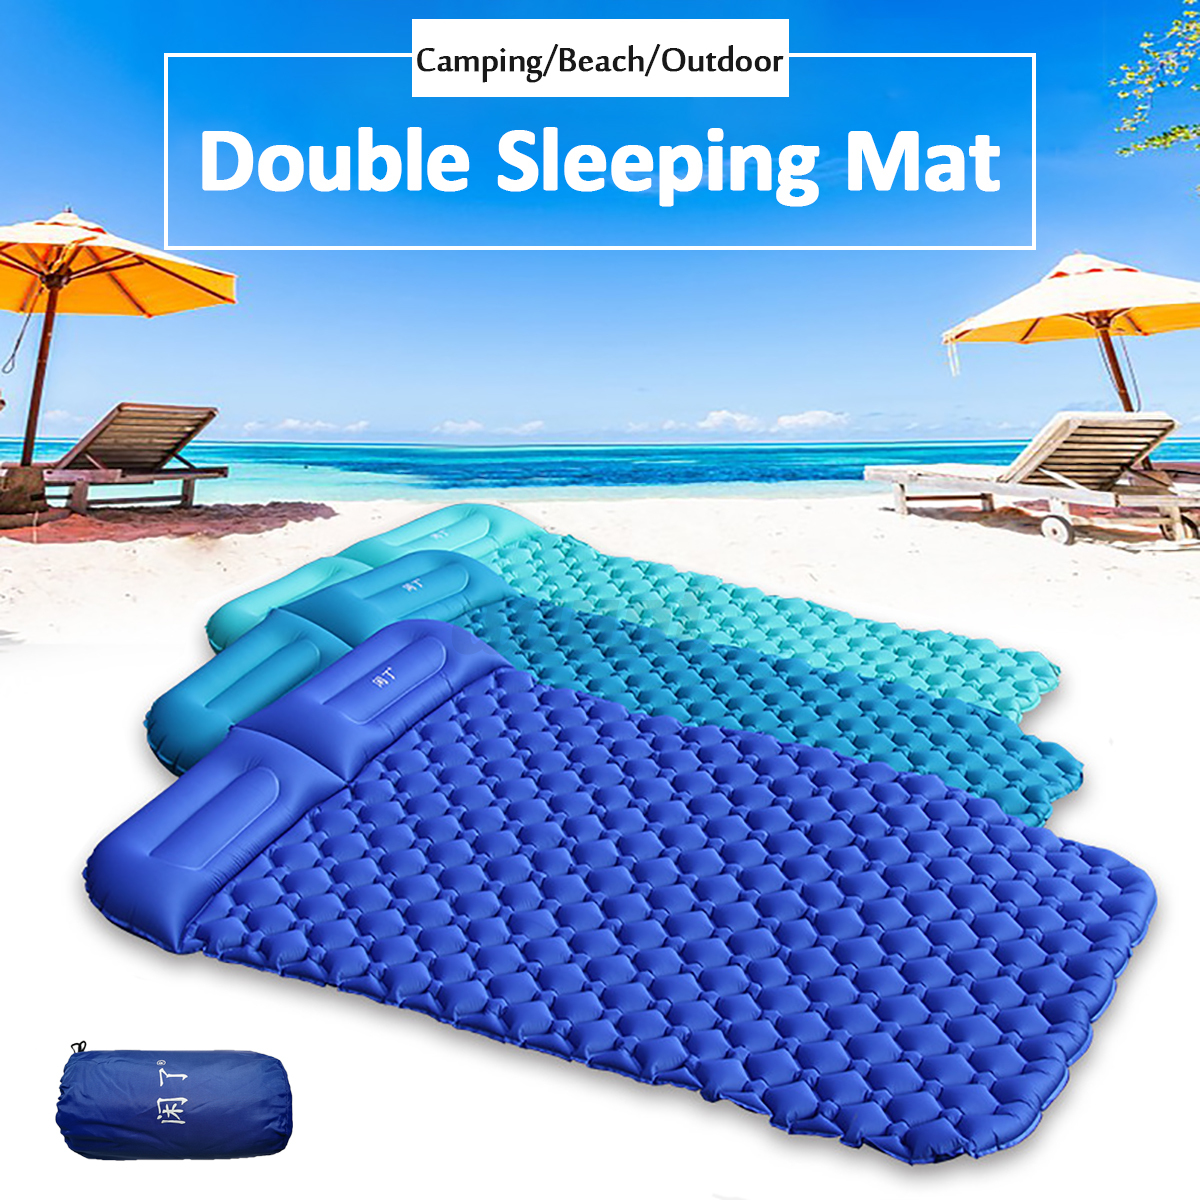 Outdoor Ultra-light Double Sleeping Mat with Inflatable Bag Hiking Air Mattress